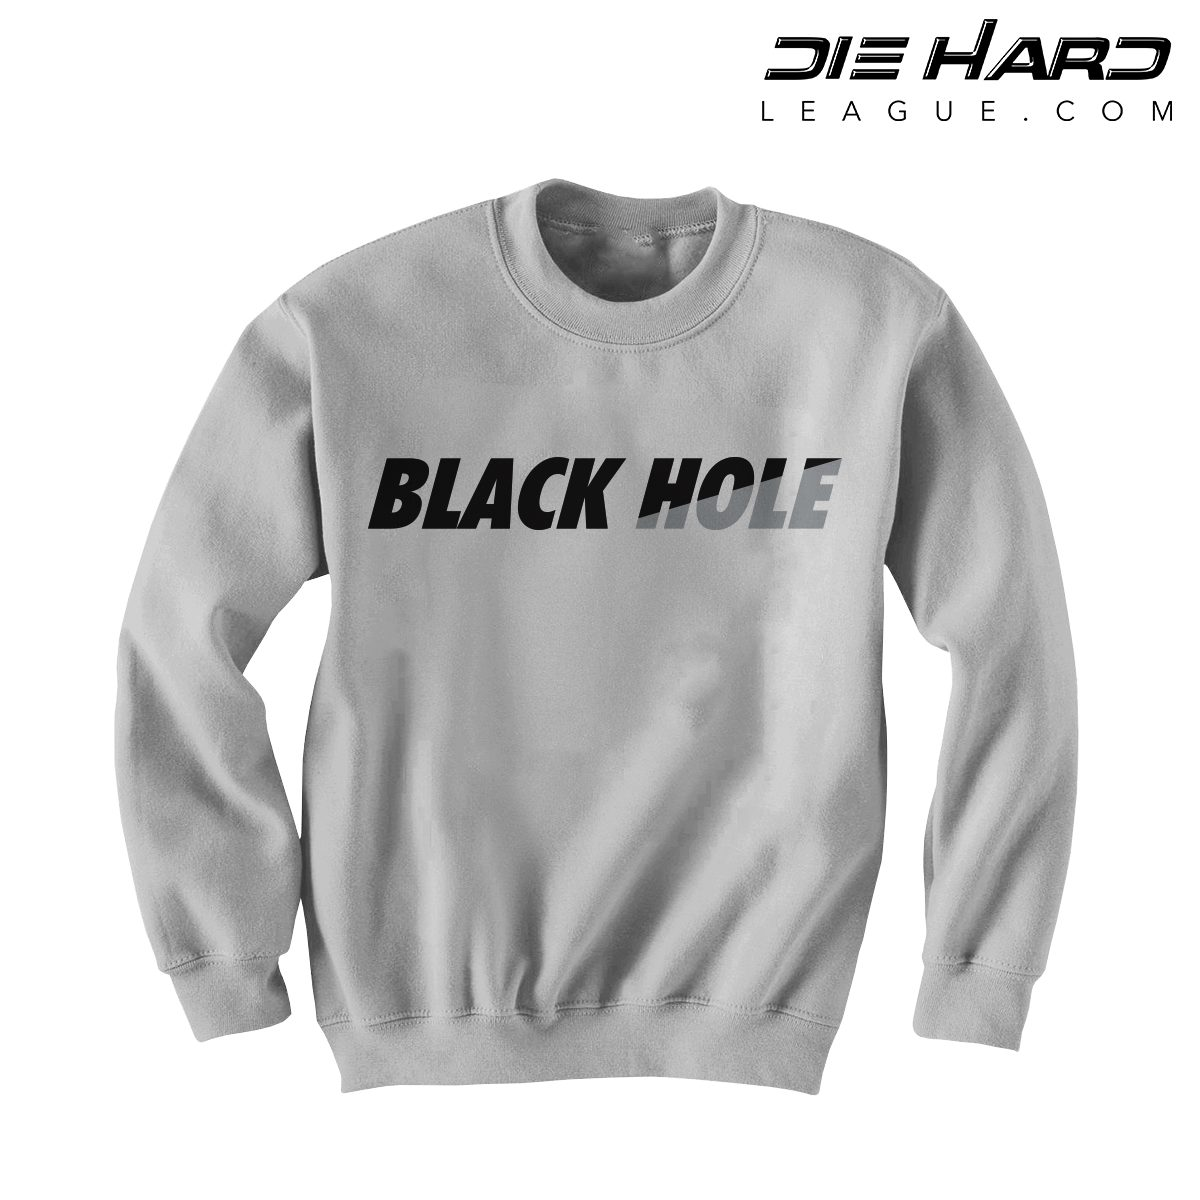 Oakland Raiders Sweatshirt - Black Hole White Crewneck ...